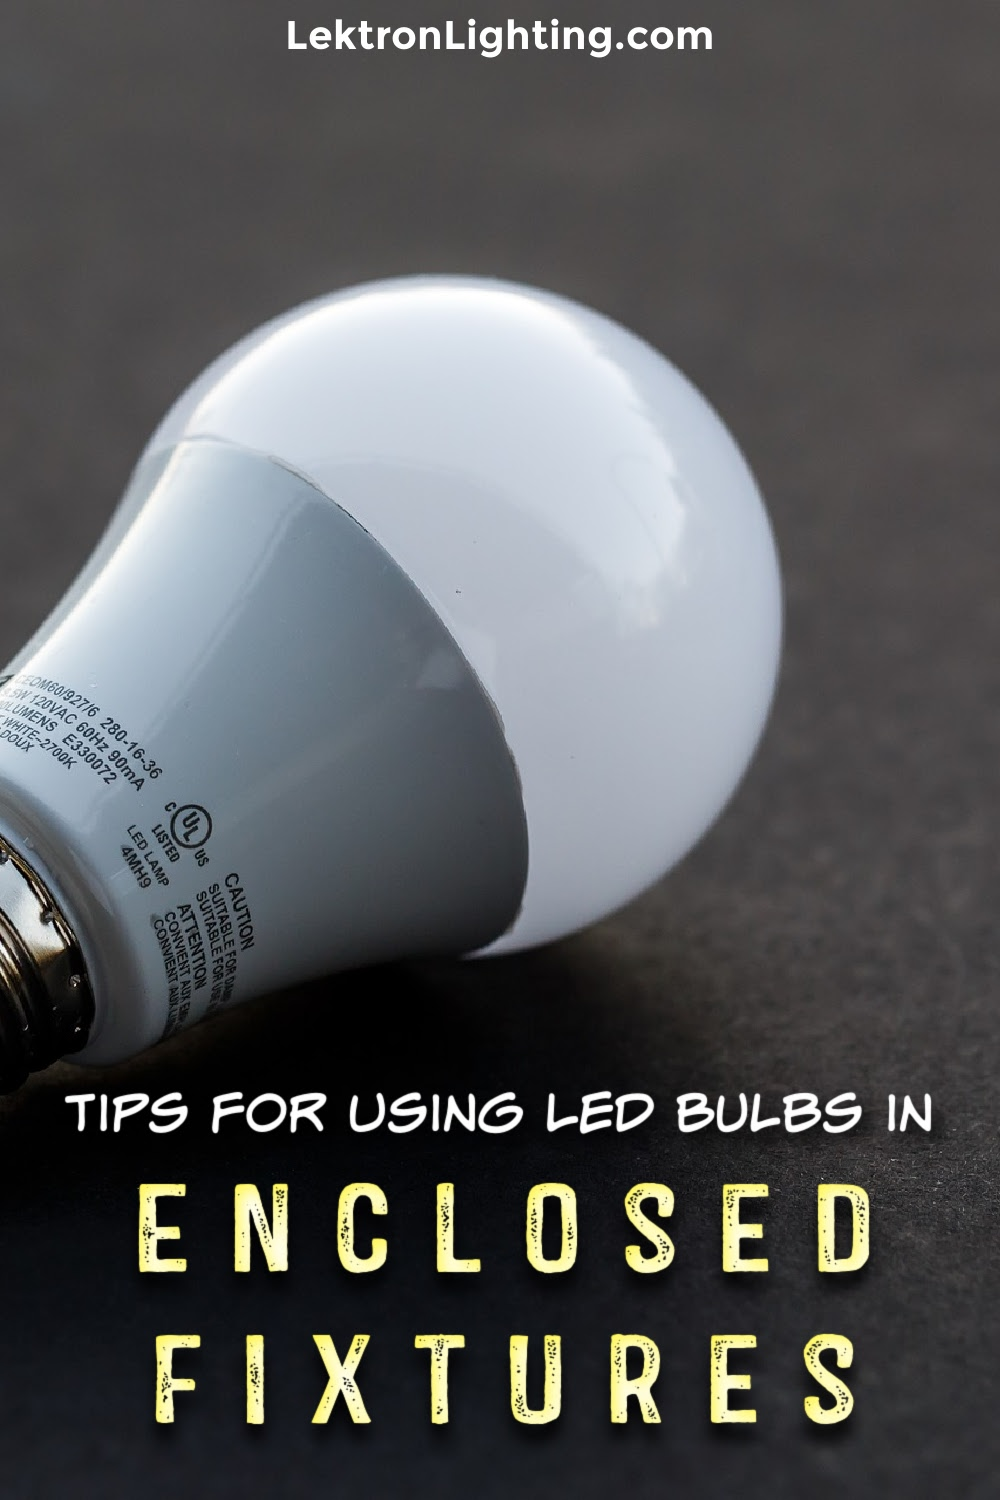 Utilize the best tips for using LED bulbs in enclosed fixtures that can help you save money on energy by finding ways to use LED bulbs.